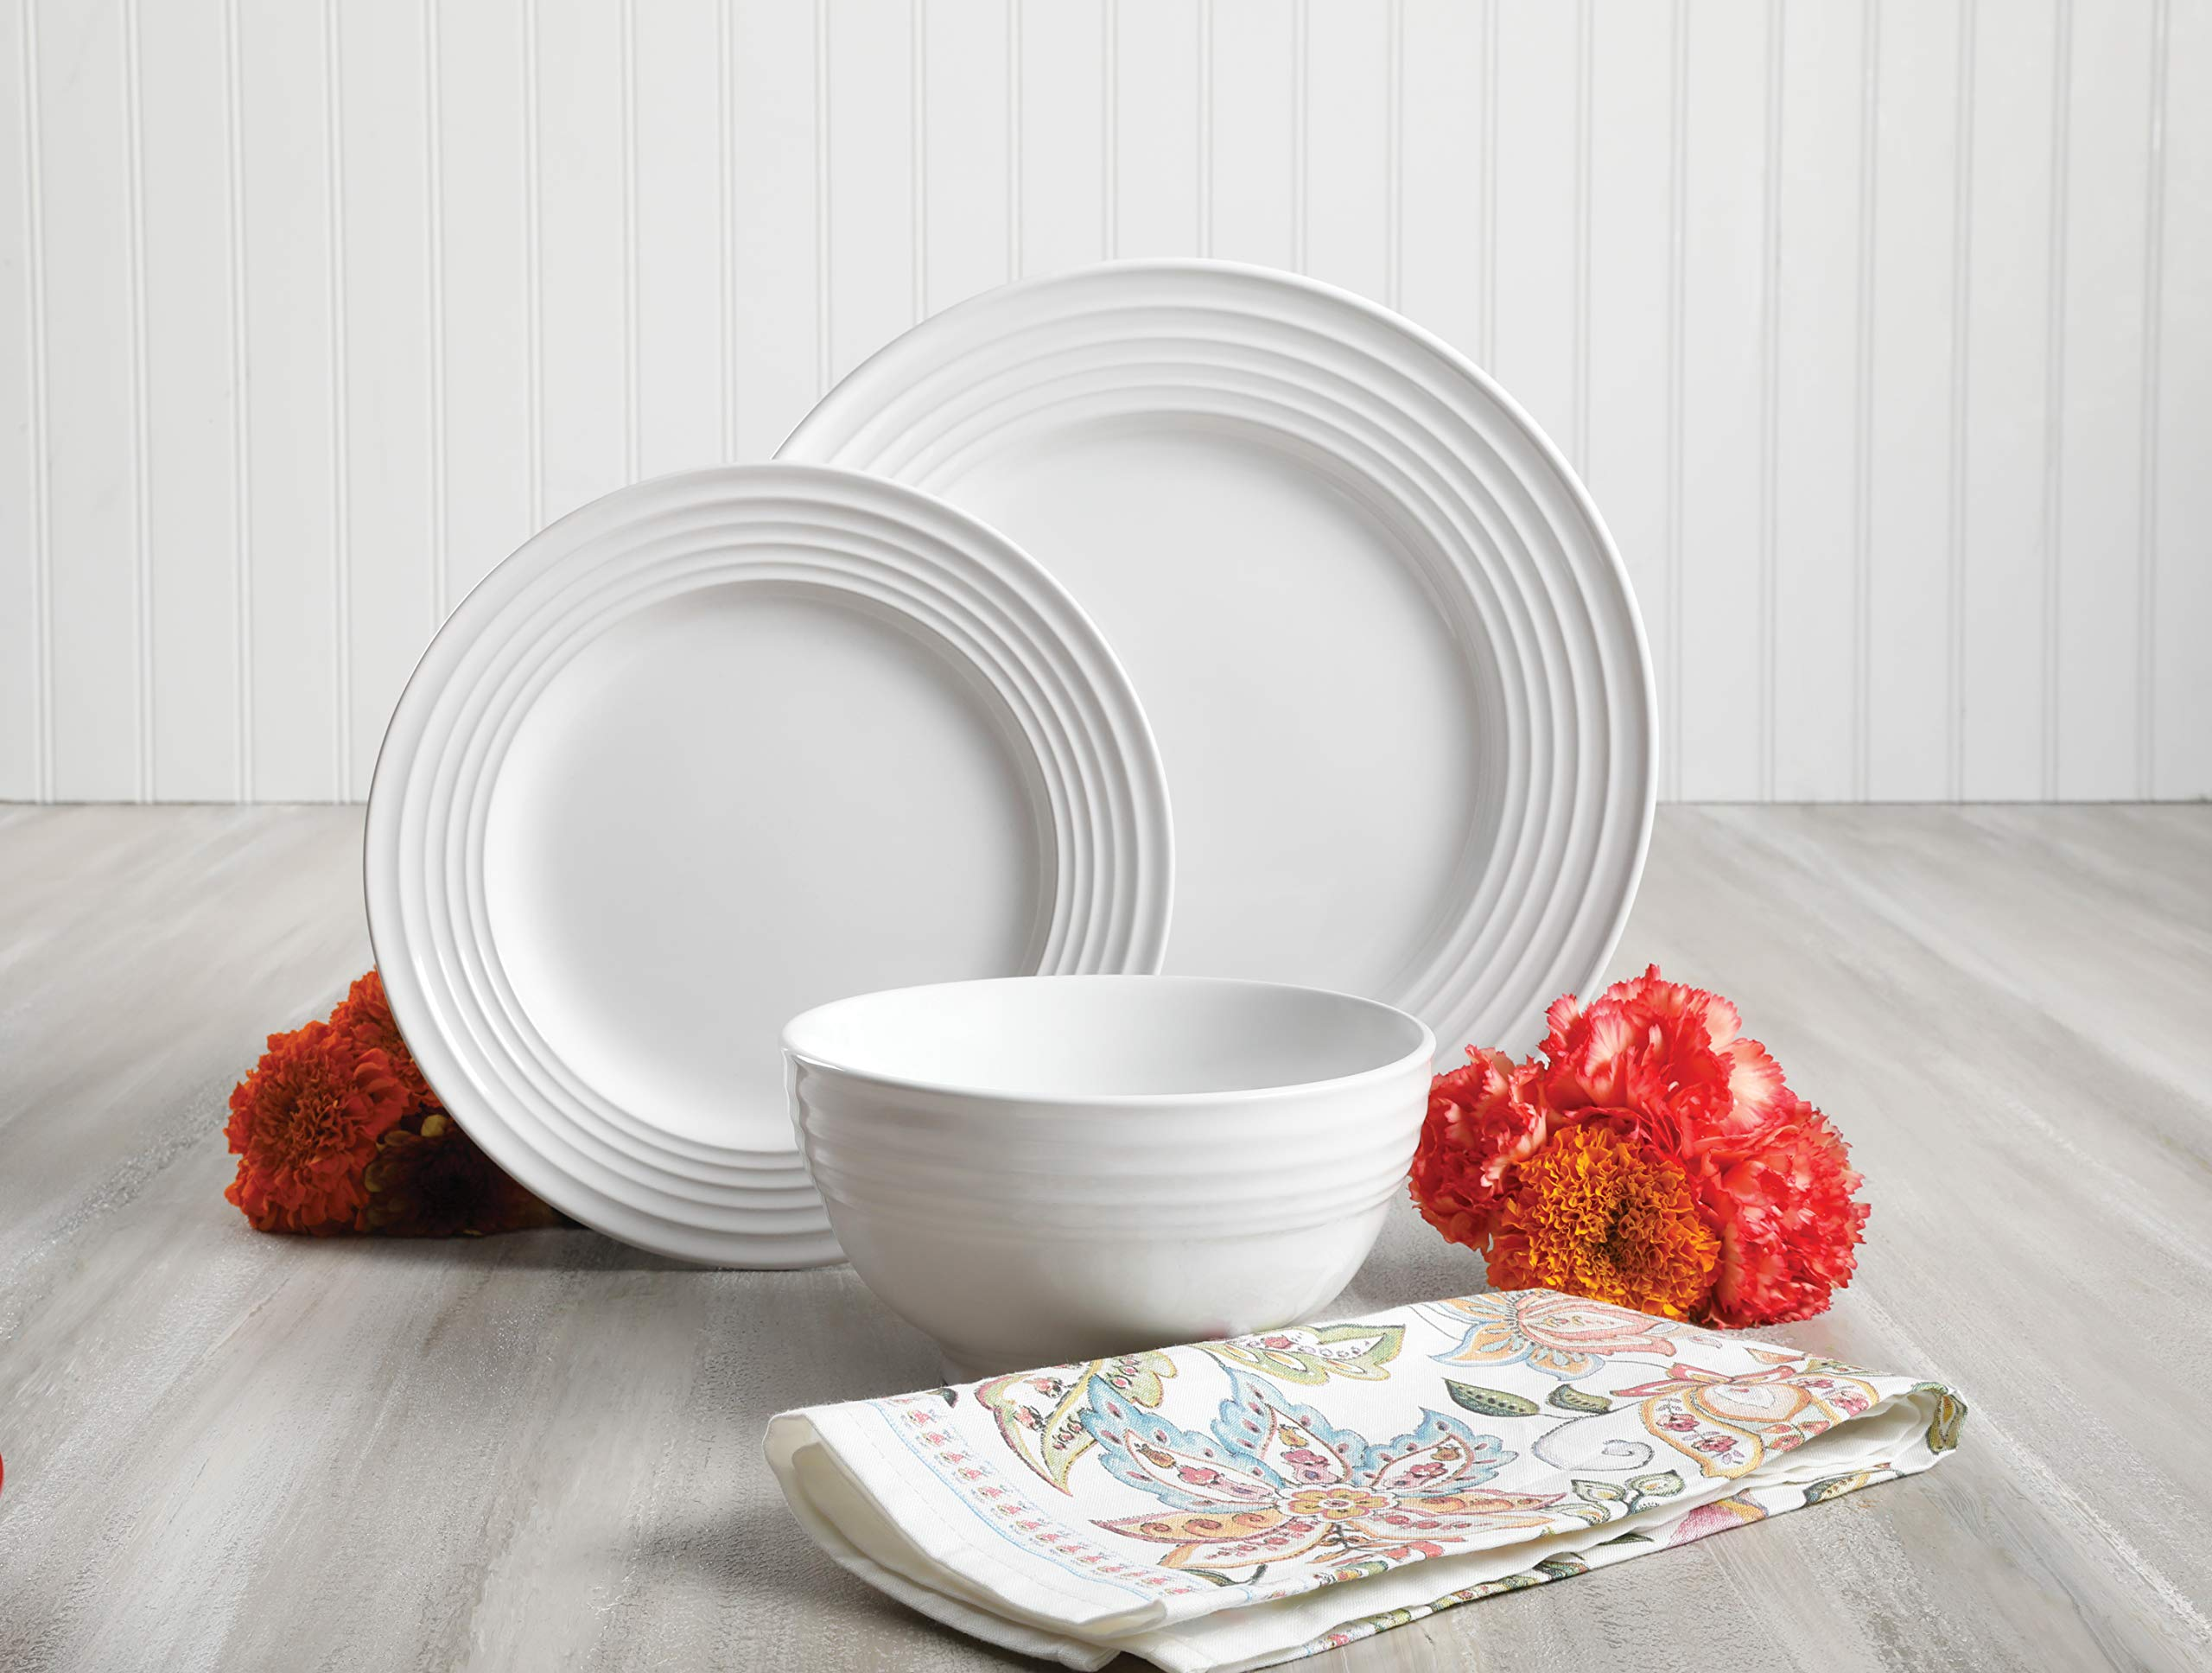 Gibson Home 12 Piece Plaza Cafe Round Dinnerware Set with Embossed Stoneware, White by Gibson Home (Image #7)